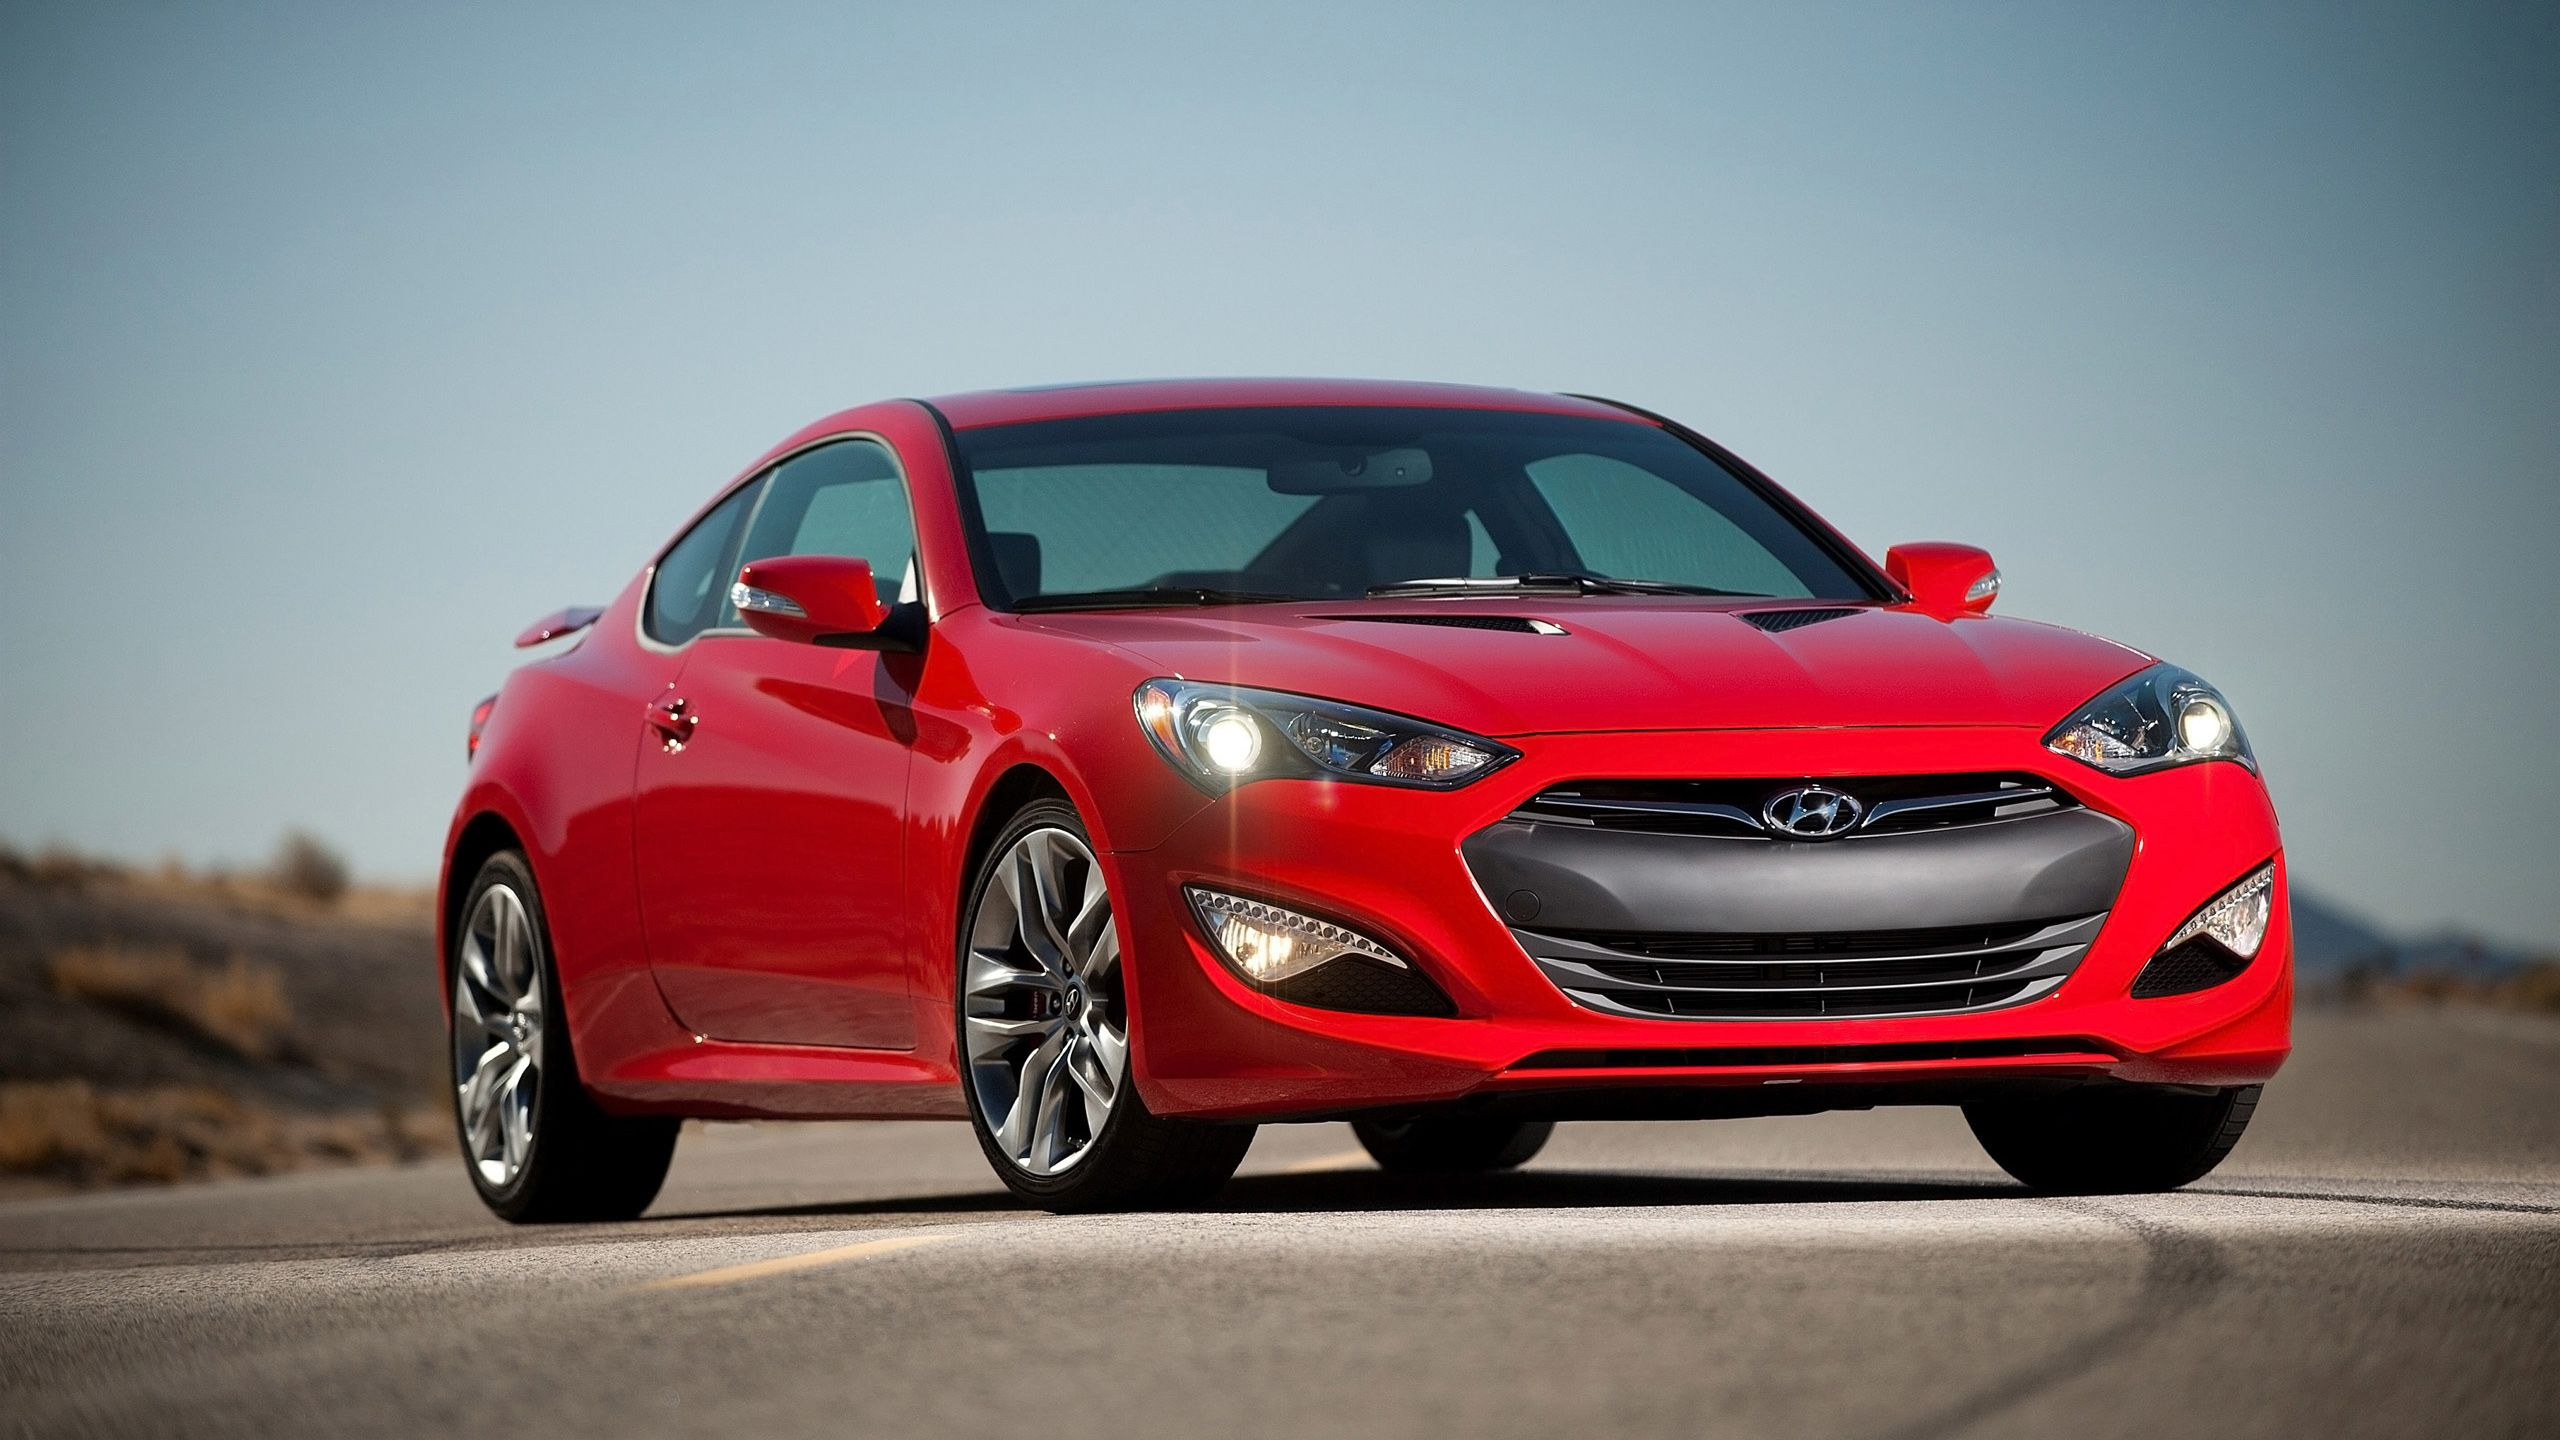 2015 hyundai genesis coupe 2 car hd wallpaper in full hd from the cars category